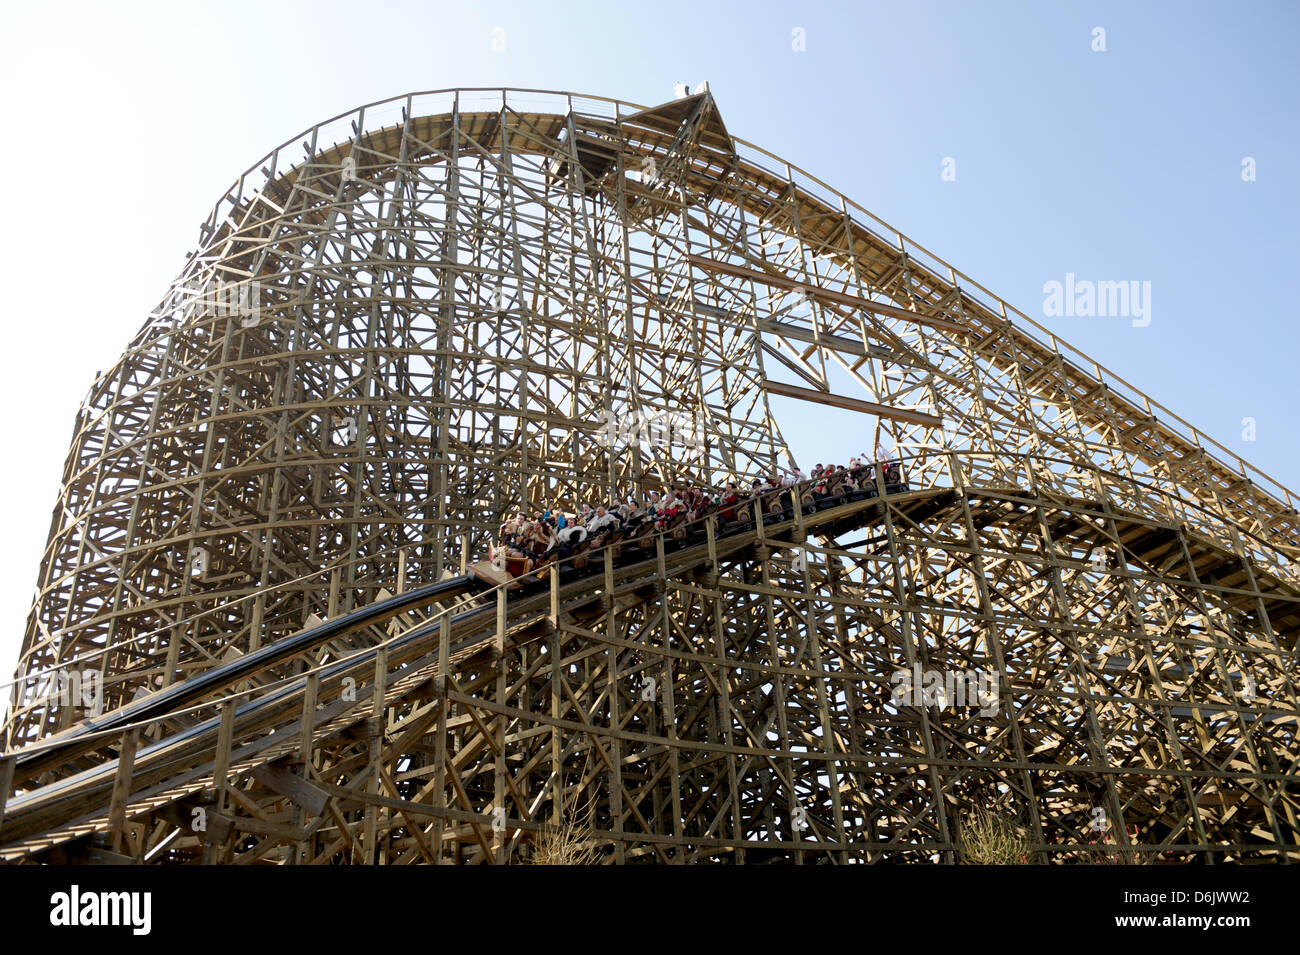 A car races down the new wooden roller coaster 'Wodan' at Europa-Park in Rust, Germany, 28 March 2012. The - Stock Image